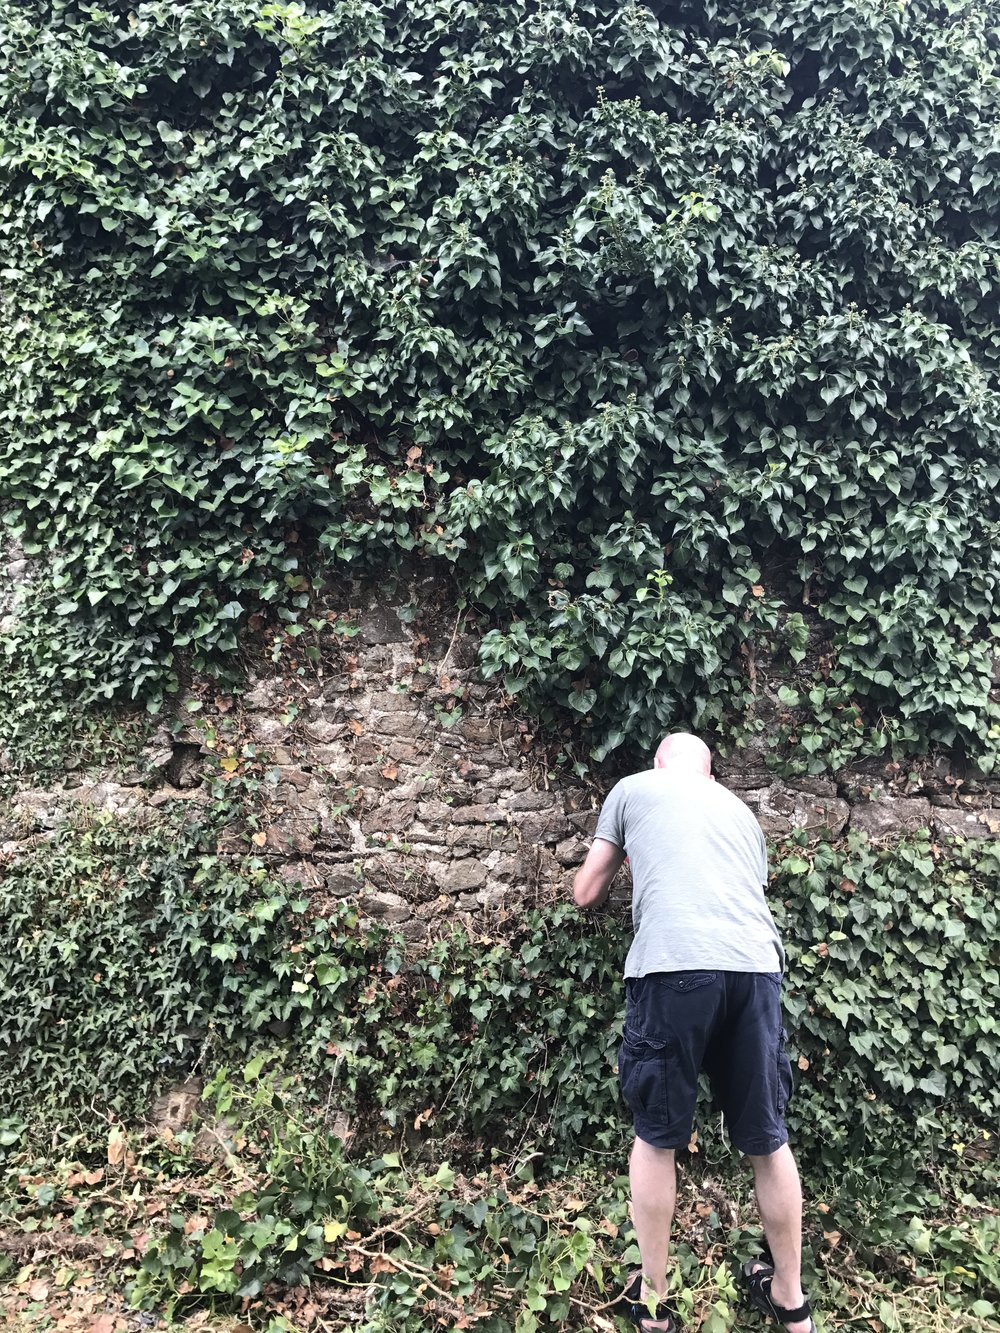 There's plenty of ivy to strip off the stone walls.